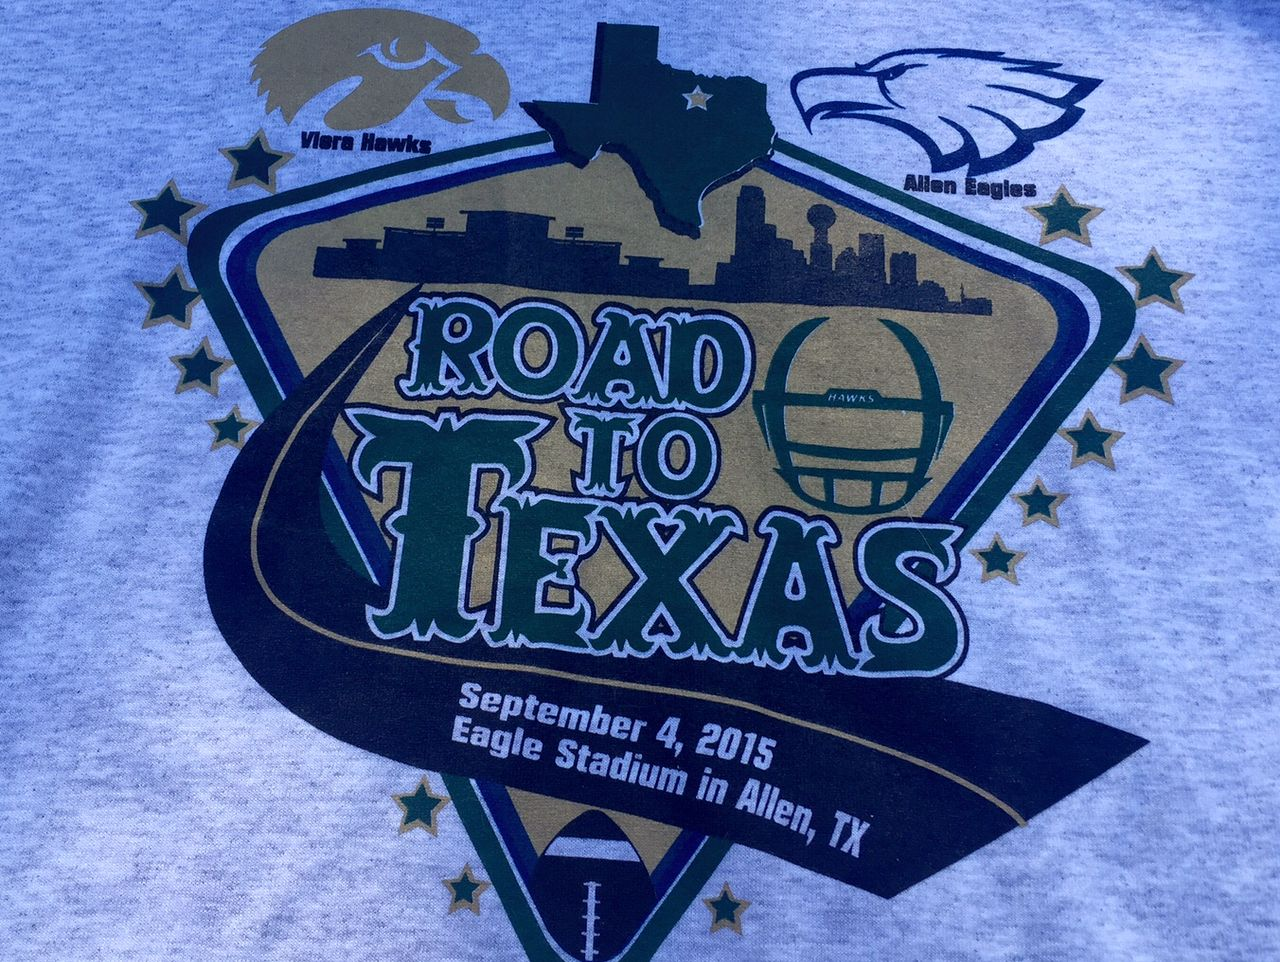 Viera (Fla.) is coming to Texas to play at Allen.